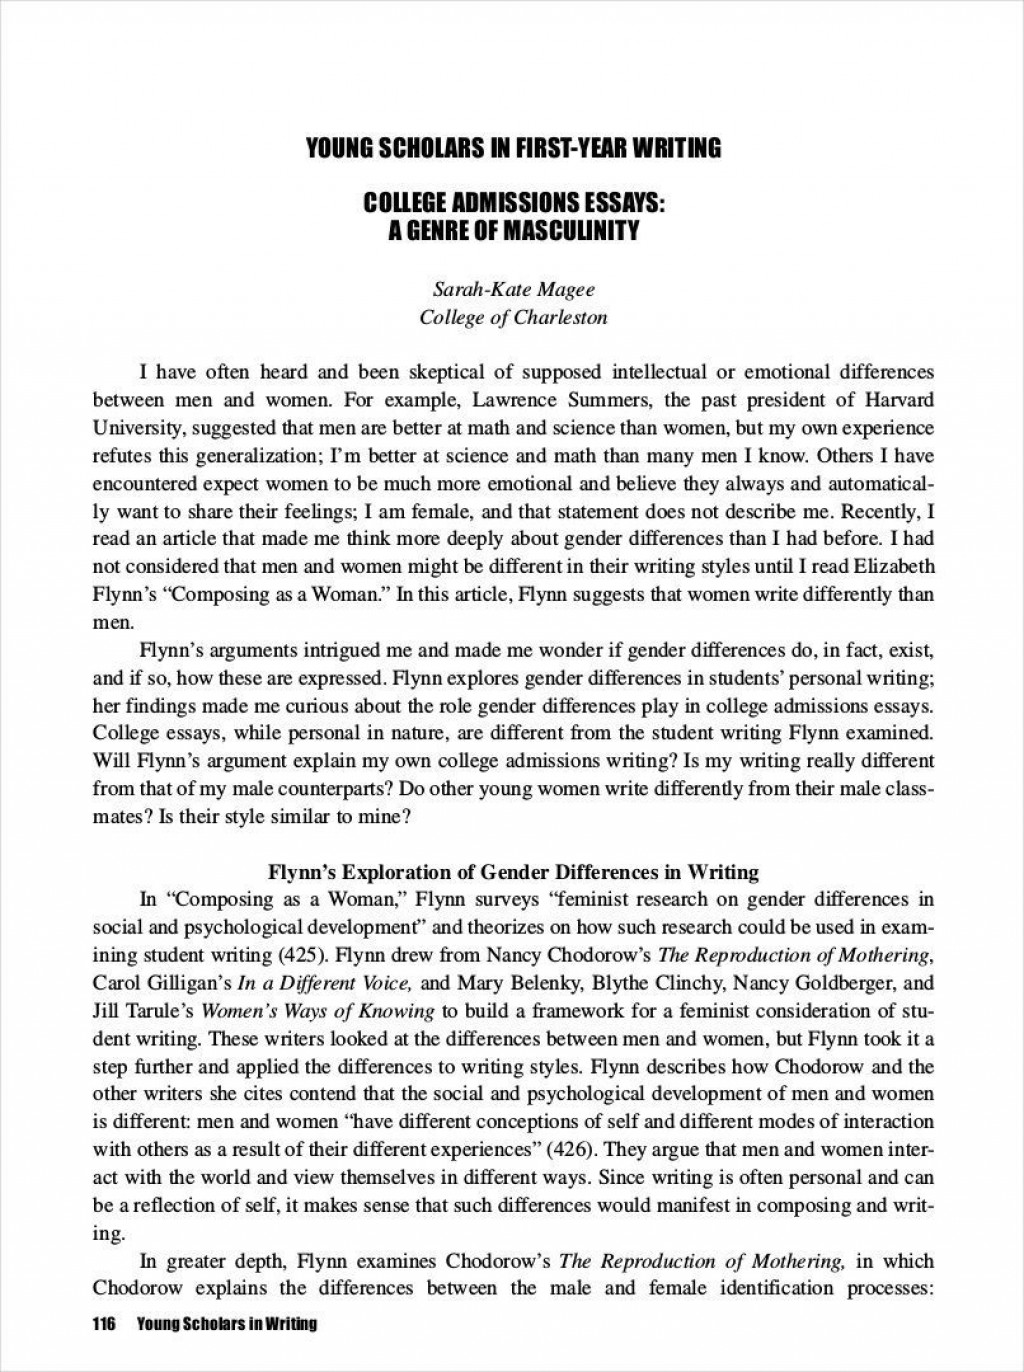 008 Unusual College Application Essay Outline Example Concept  Admission Format Heading Narrative TemplateLarge